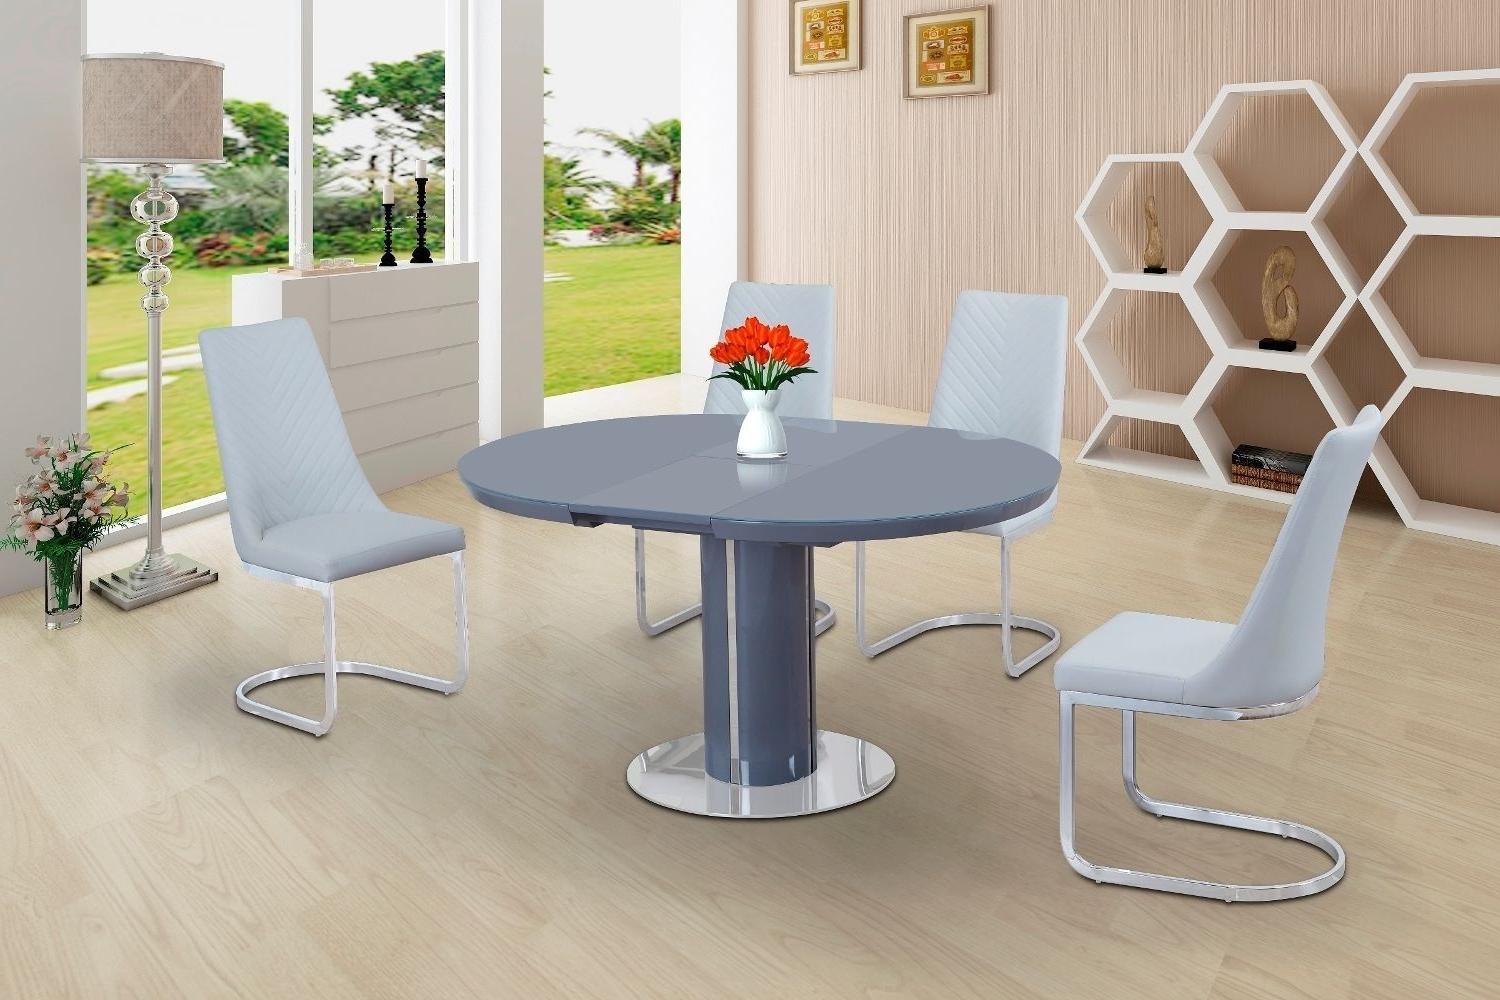 Extendable Round Dining Tables Sets In Fashionable Eclipse Round Oval Gloss & Glass Extending 110 To 145 Cm Dining (Gallery 7 of 25)